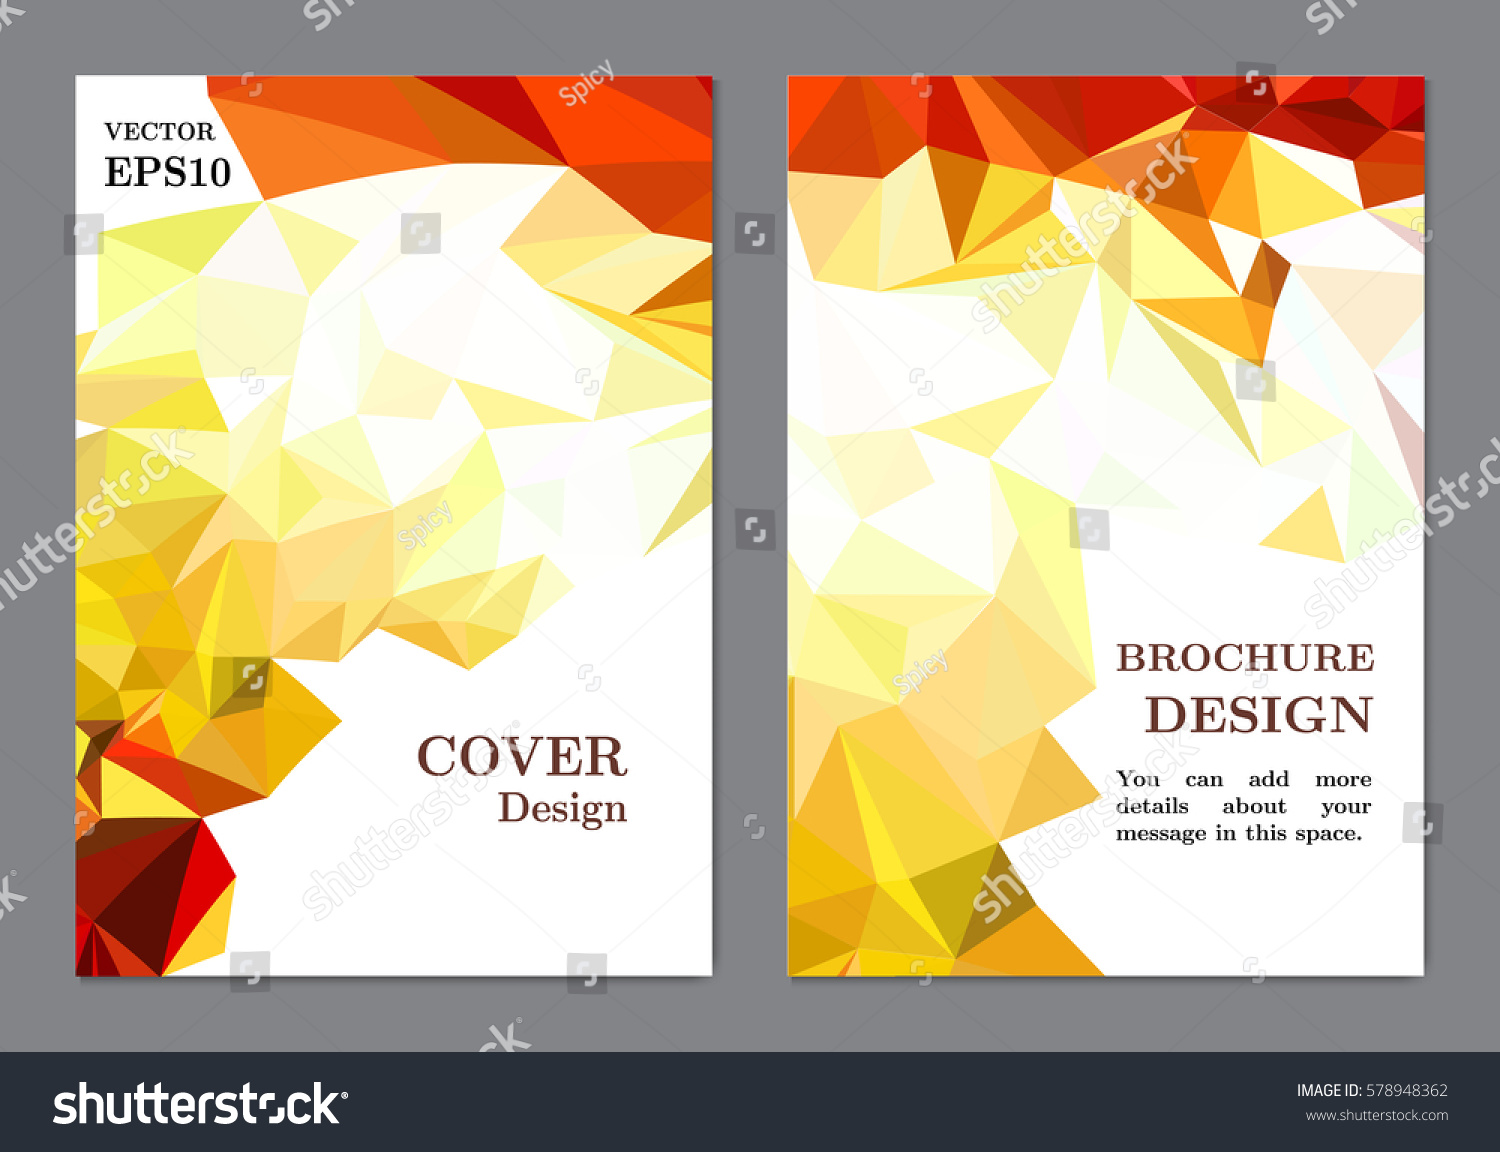 Book Cover Design Sites : Background business book cover design template stock